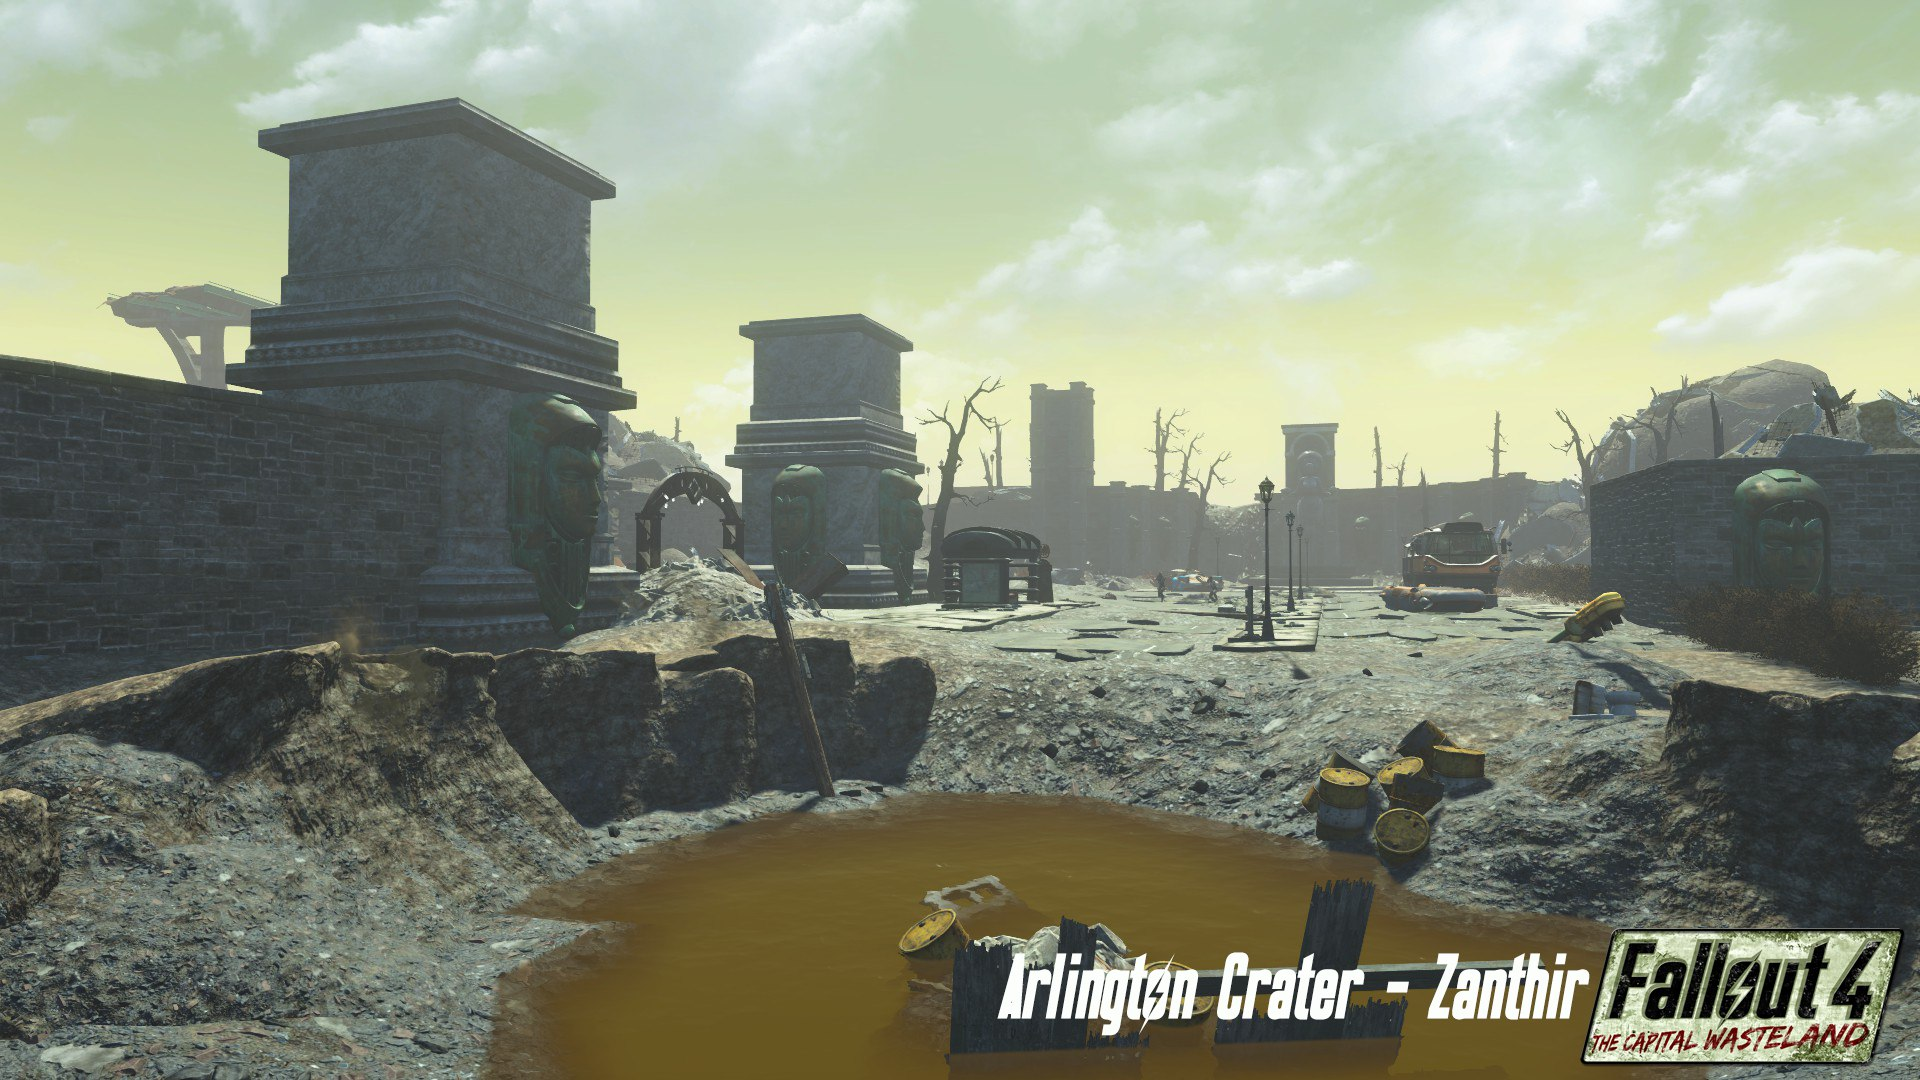 Fallout 4: The Capital Wasteland